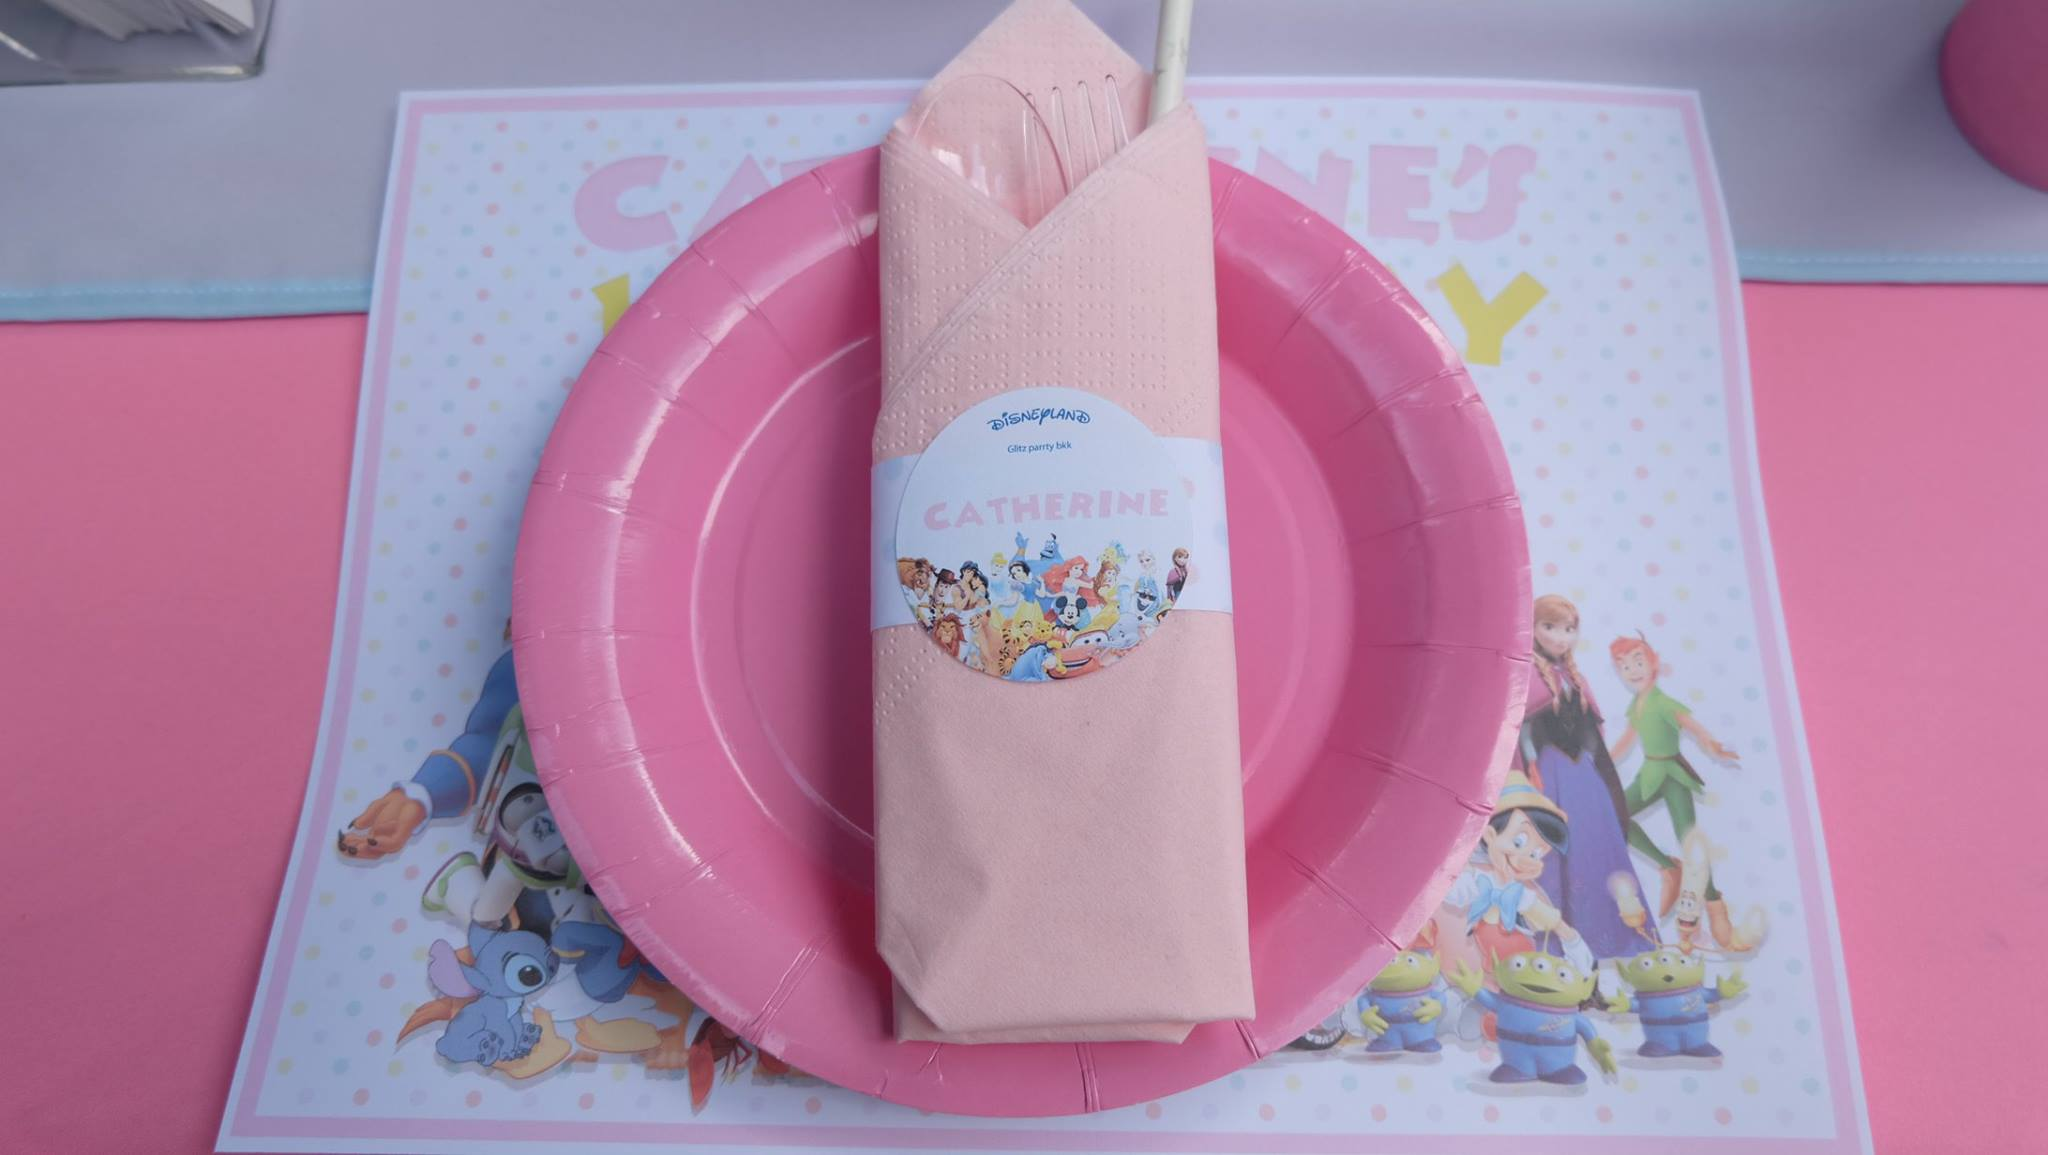 Cute birthday party in kids' favorite Disney themed decoration, backdrop, cake table, birthday cake and themed desserts